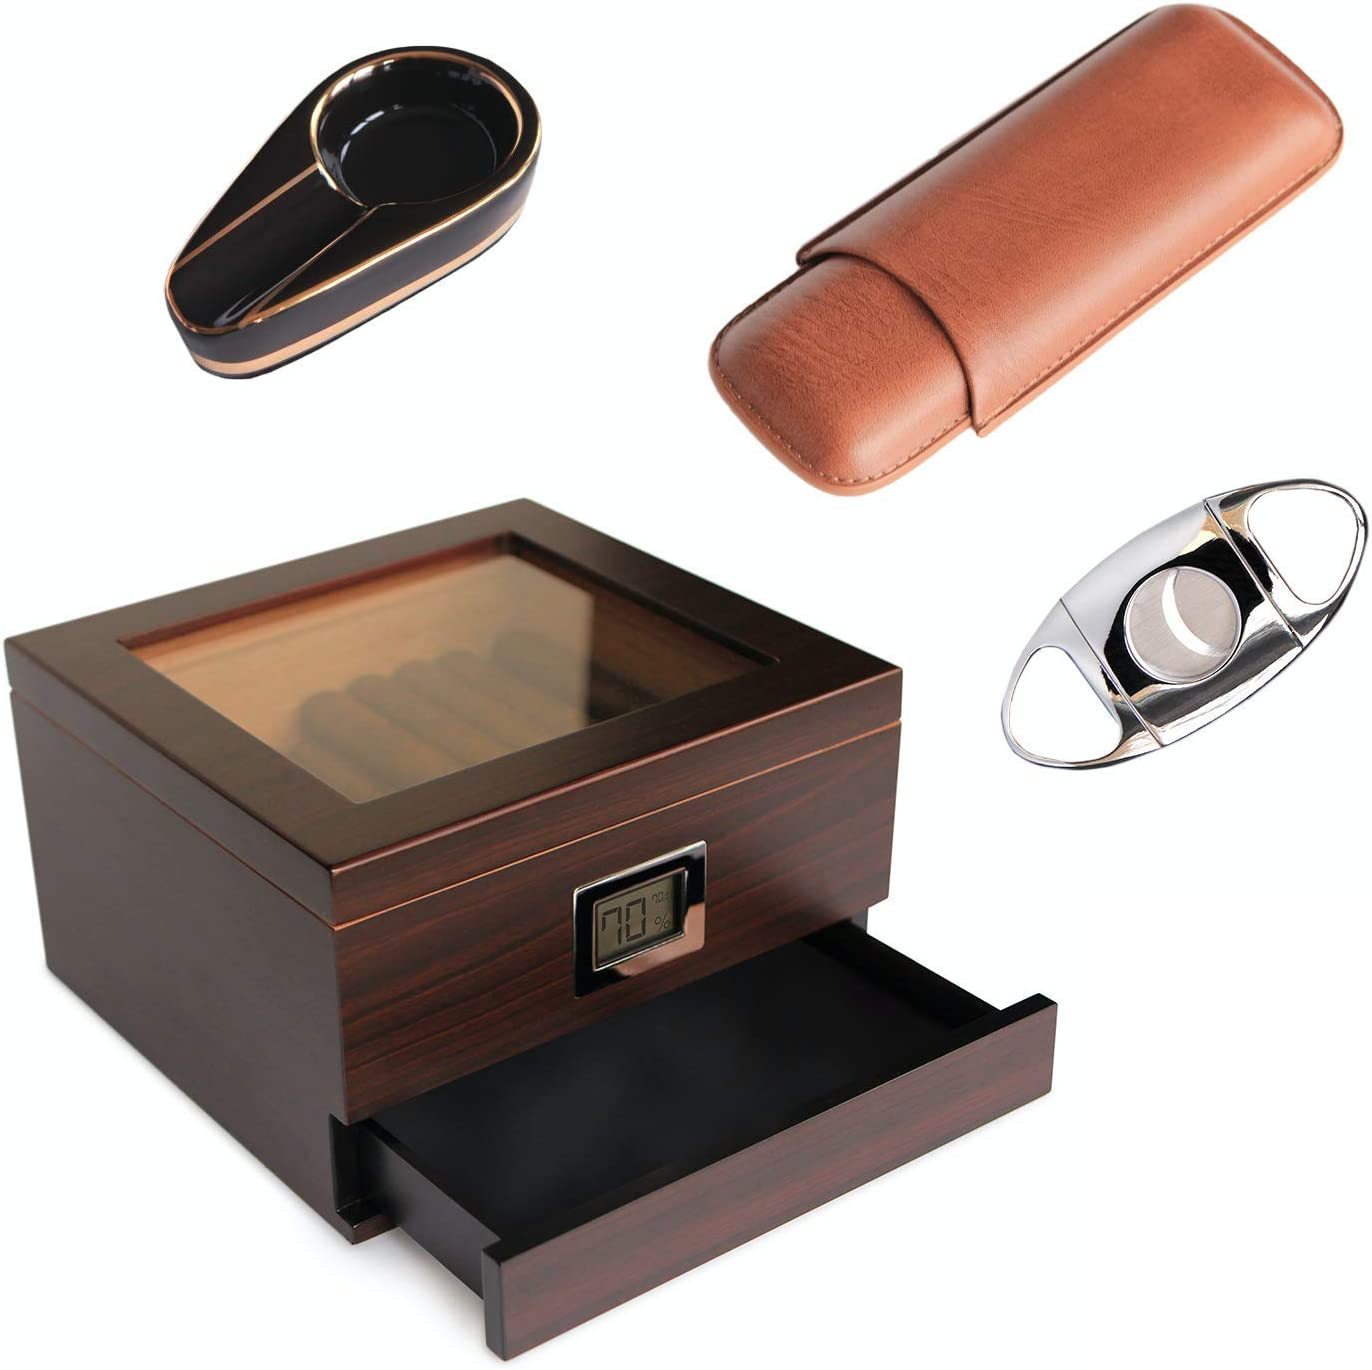 CASE ELEGANCE - Renzo Glass Top Humidor with Cigar Cutter, Ashtray, and Travel Cigar case Bundle